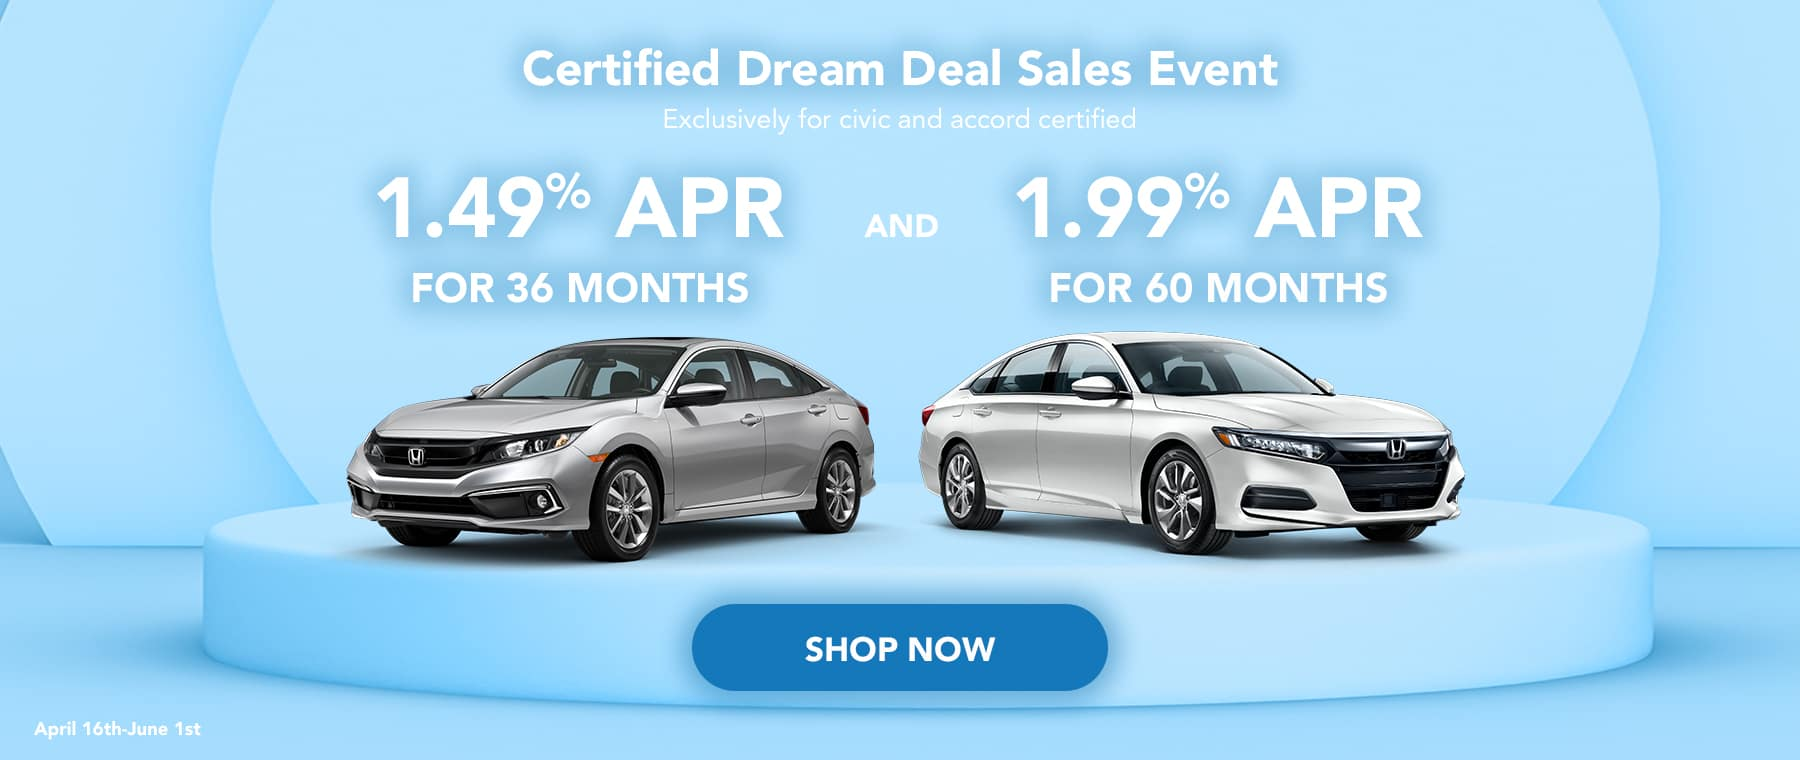 Certified dream deal sales event Exclusively for civic and accord certified April16th-June1st